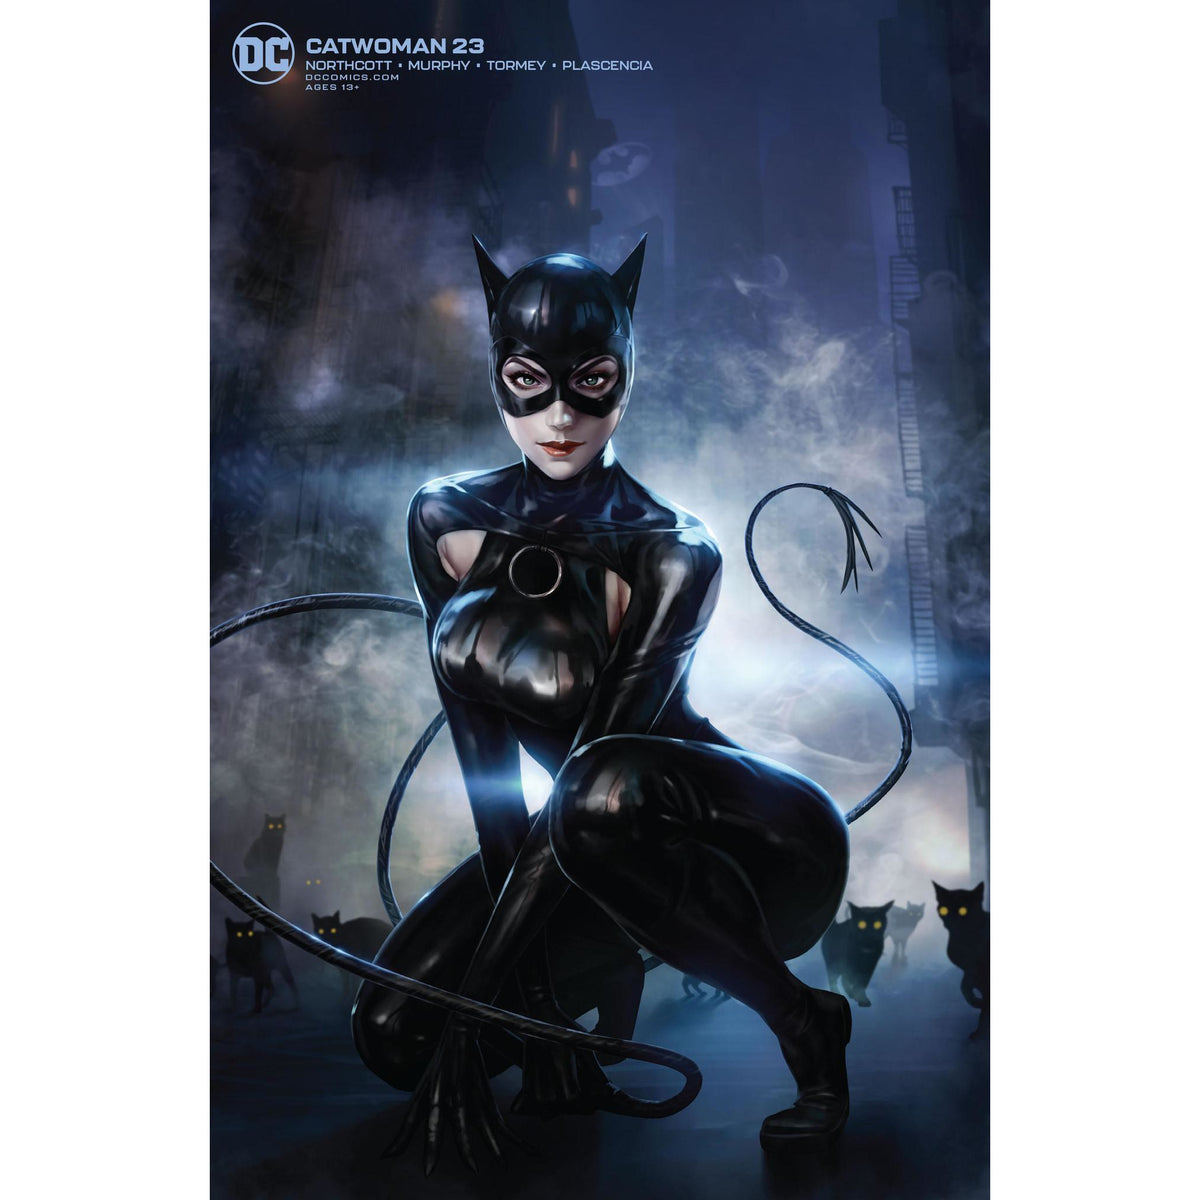 CATWOMAN #23 - WOO CHUL LEE VARIANT COVER B